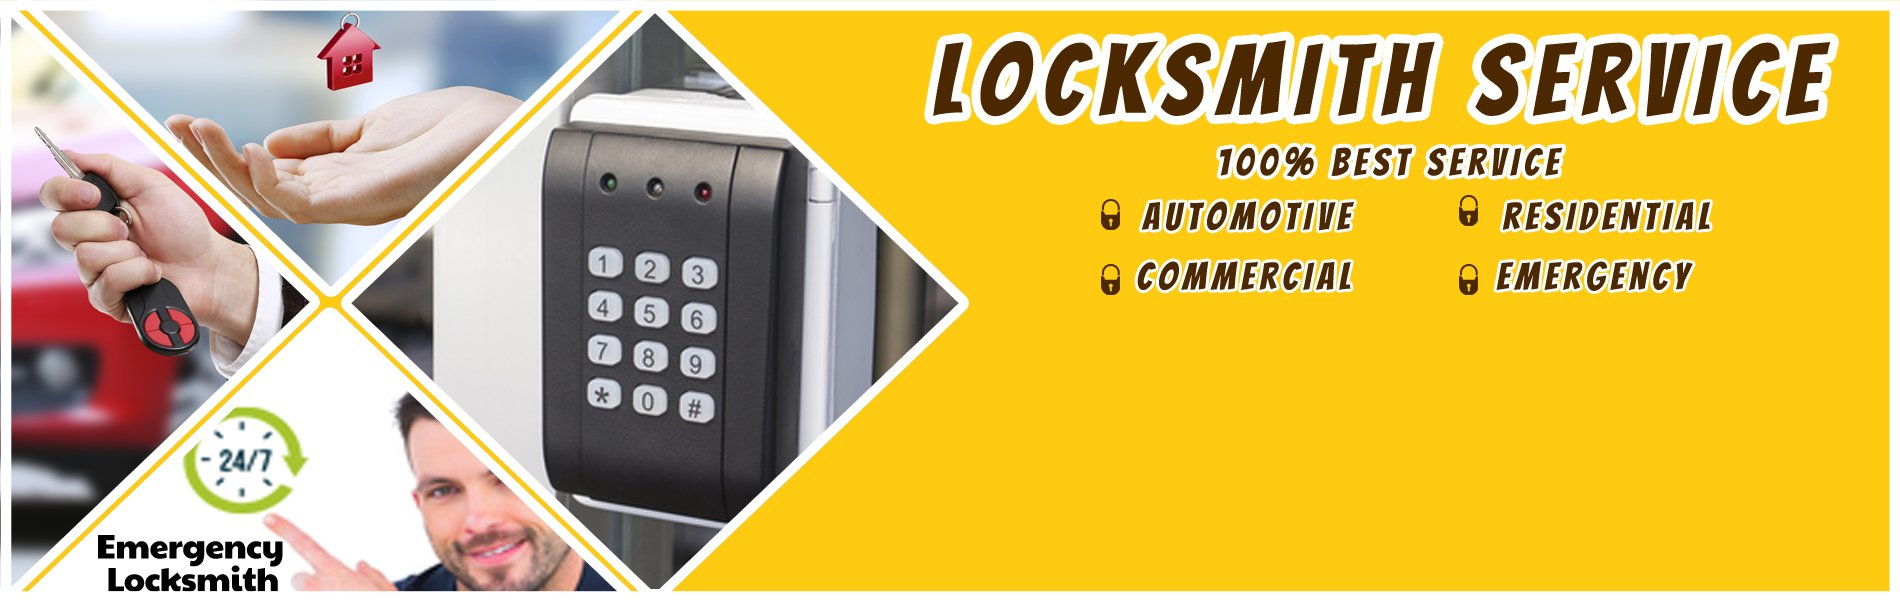 Expert Locksmith Store Washington, MI 586-404-4121